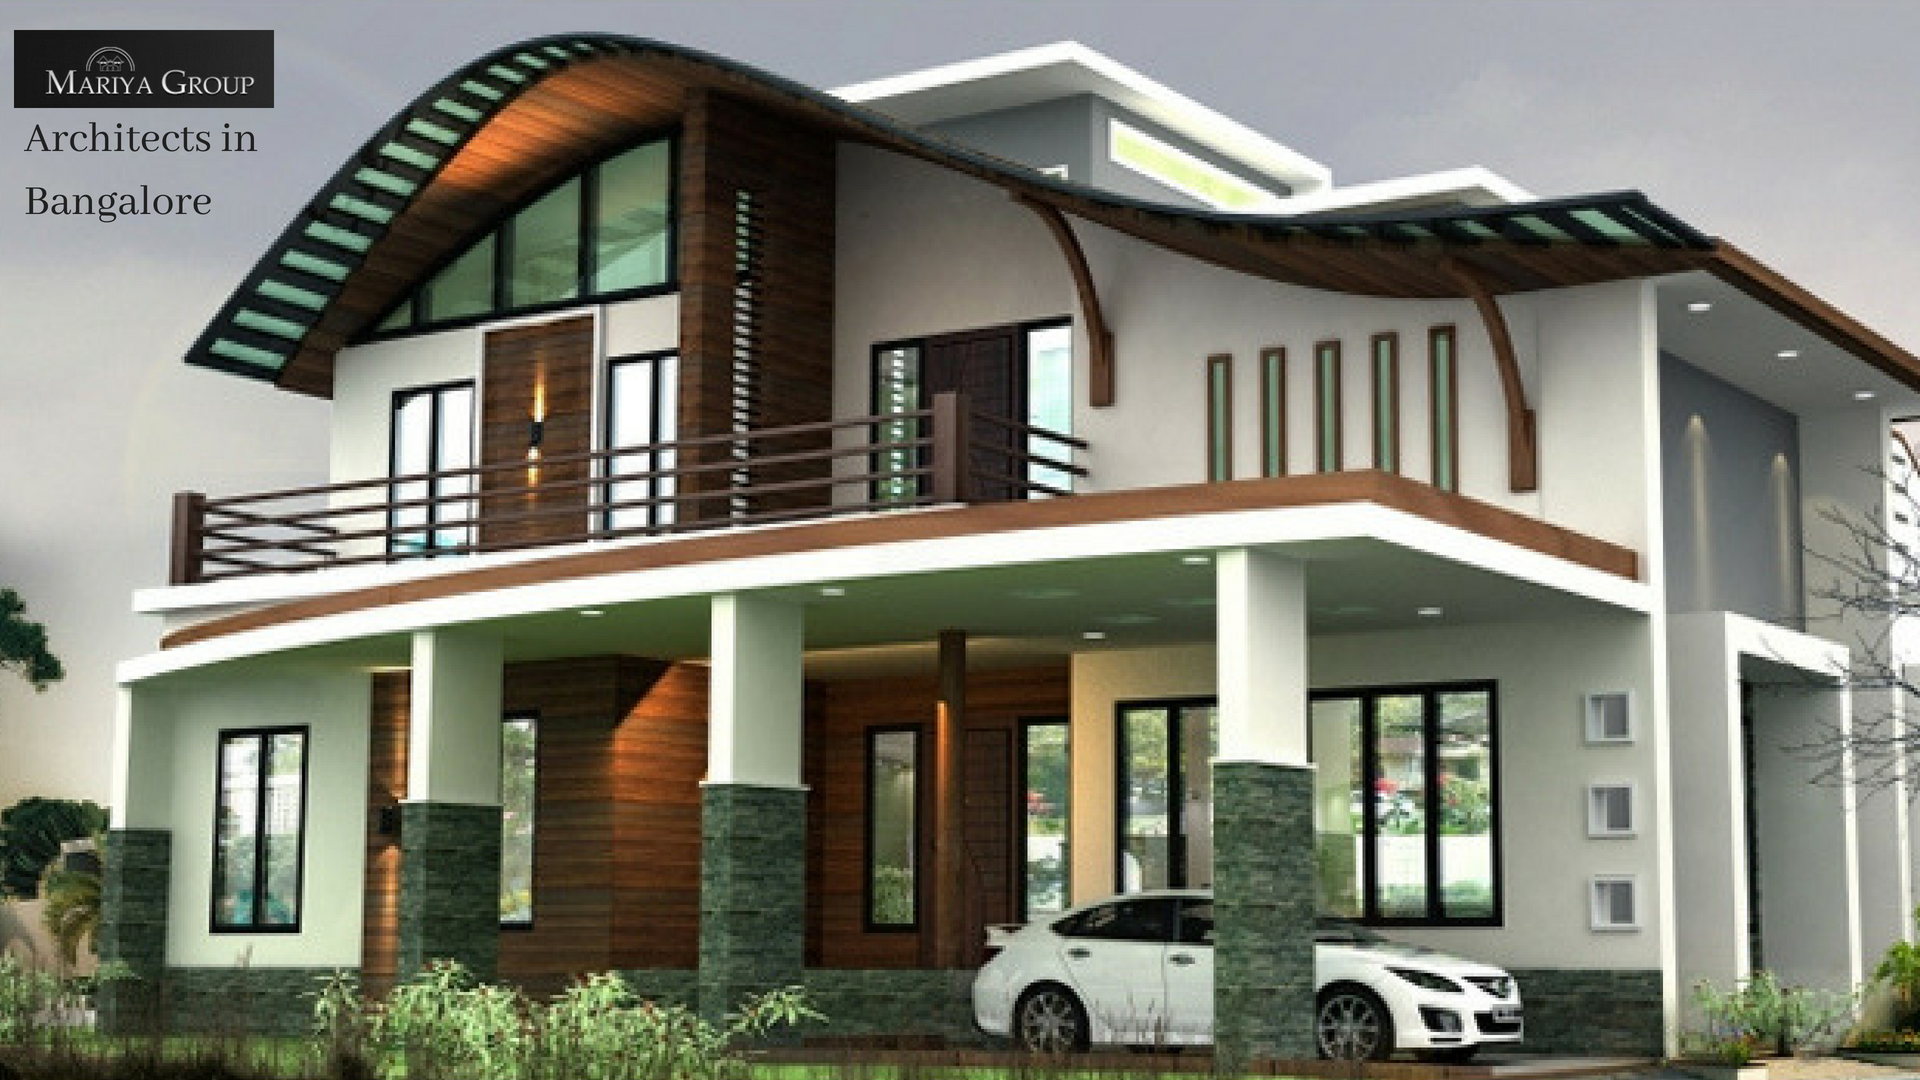 mariya group offers the best architect in bangalore our architects